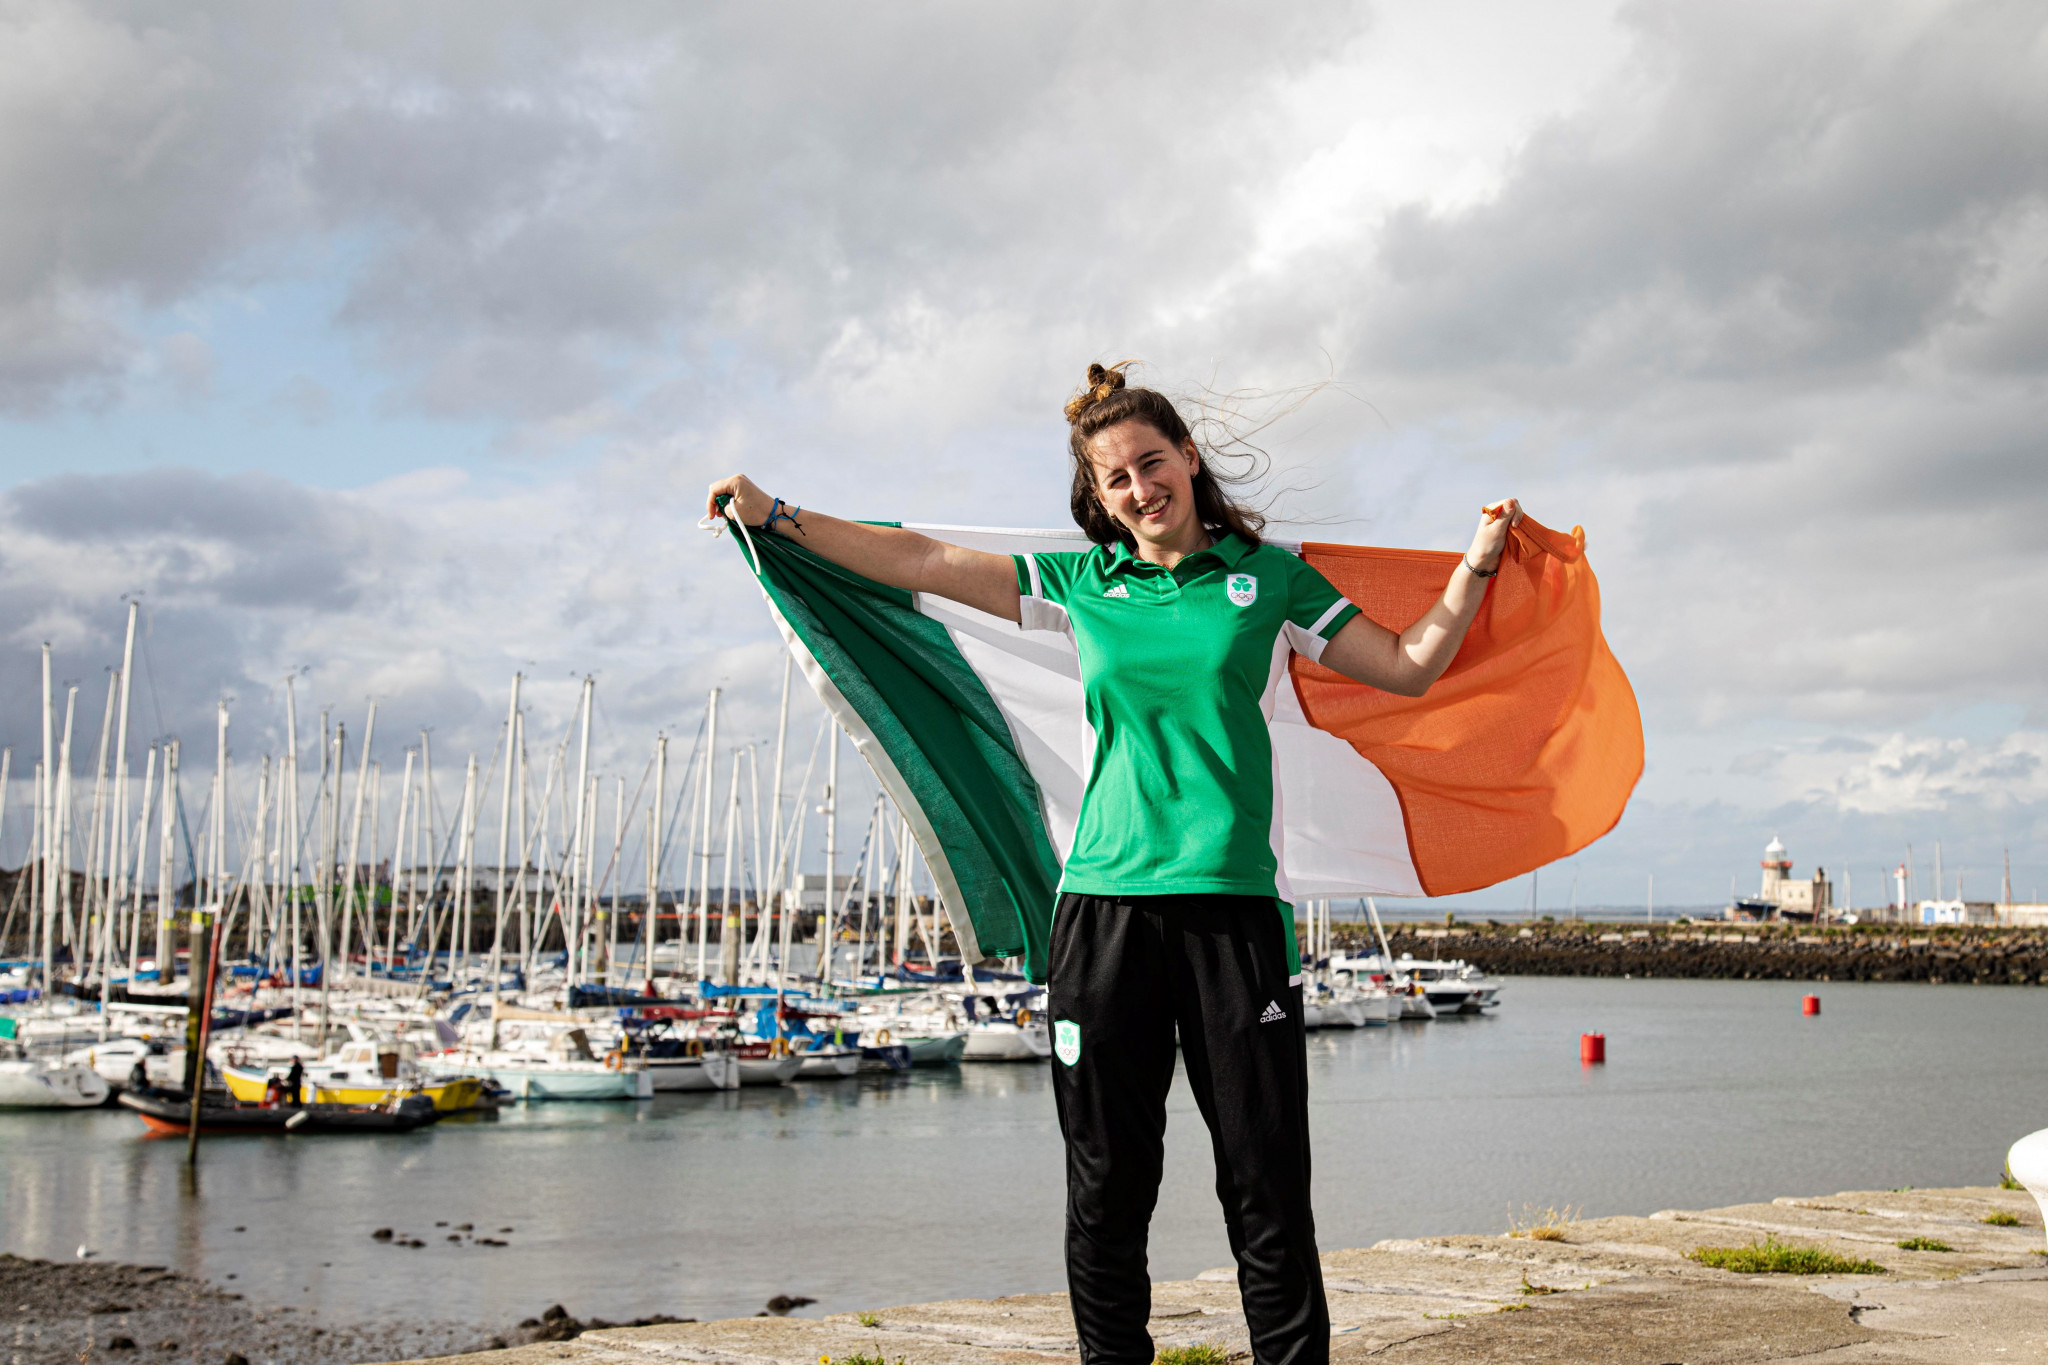 Irish duo target wakeboarding glory at inaugural ANOC World Beach Games